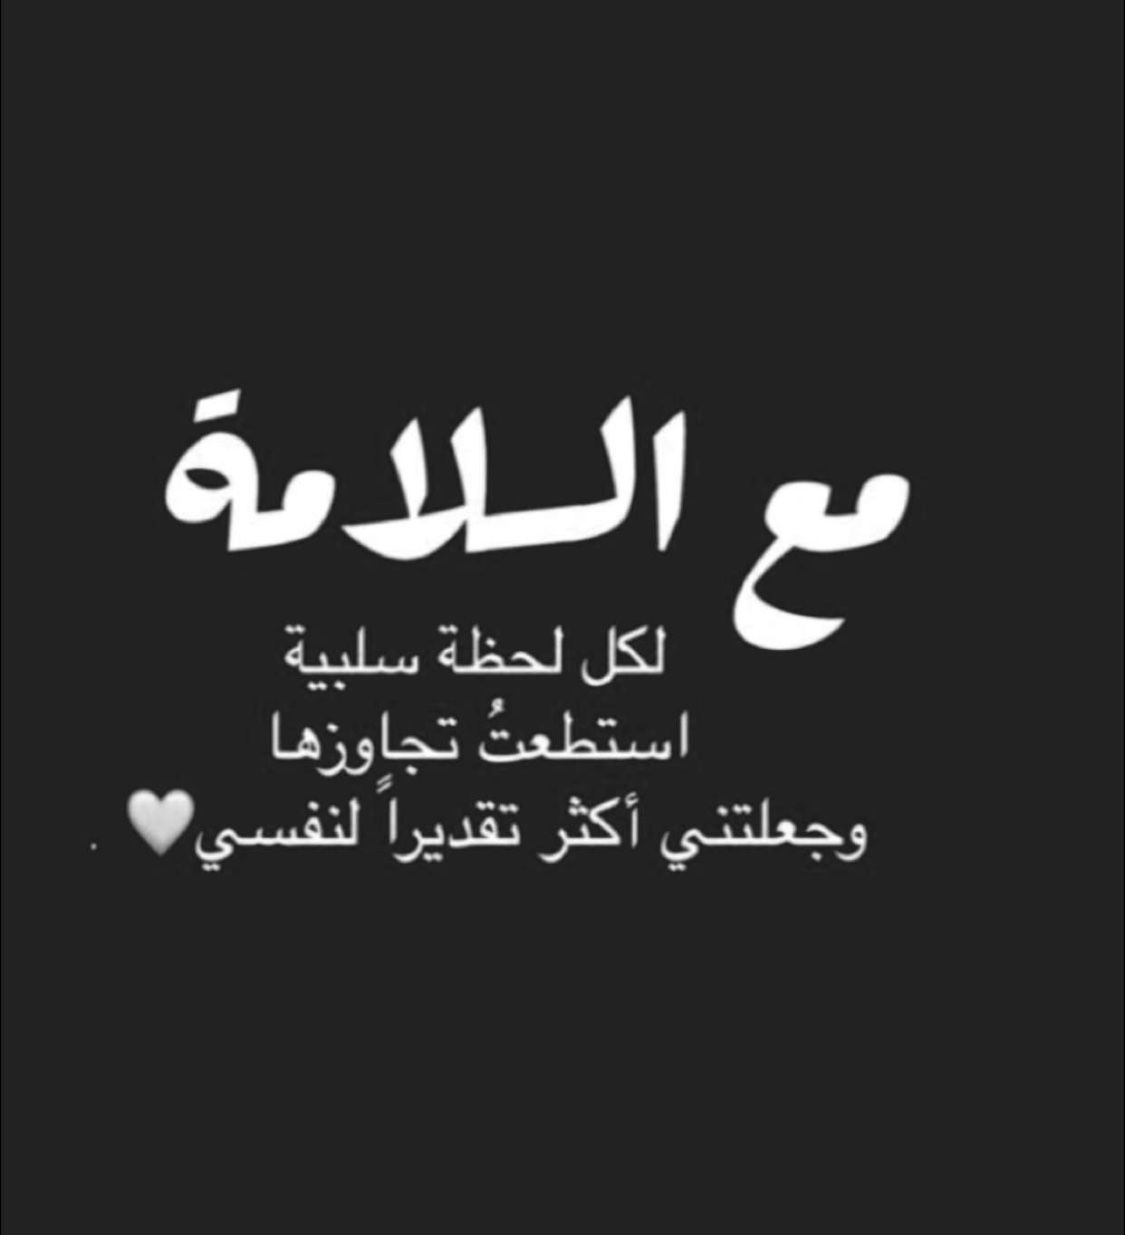 Pin By Laghfirywidyan On غيداااء Arabic Quotes Drawing Quotes Beautiful Arabic Words